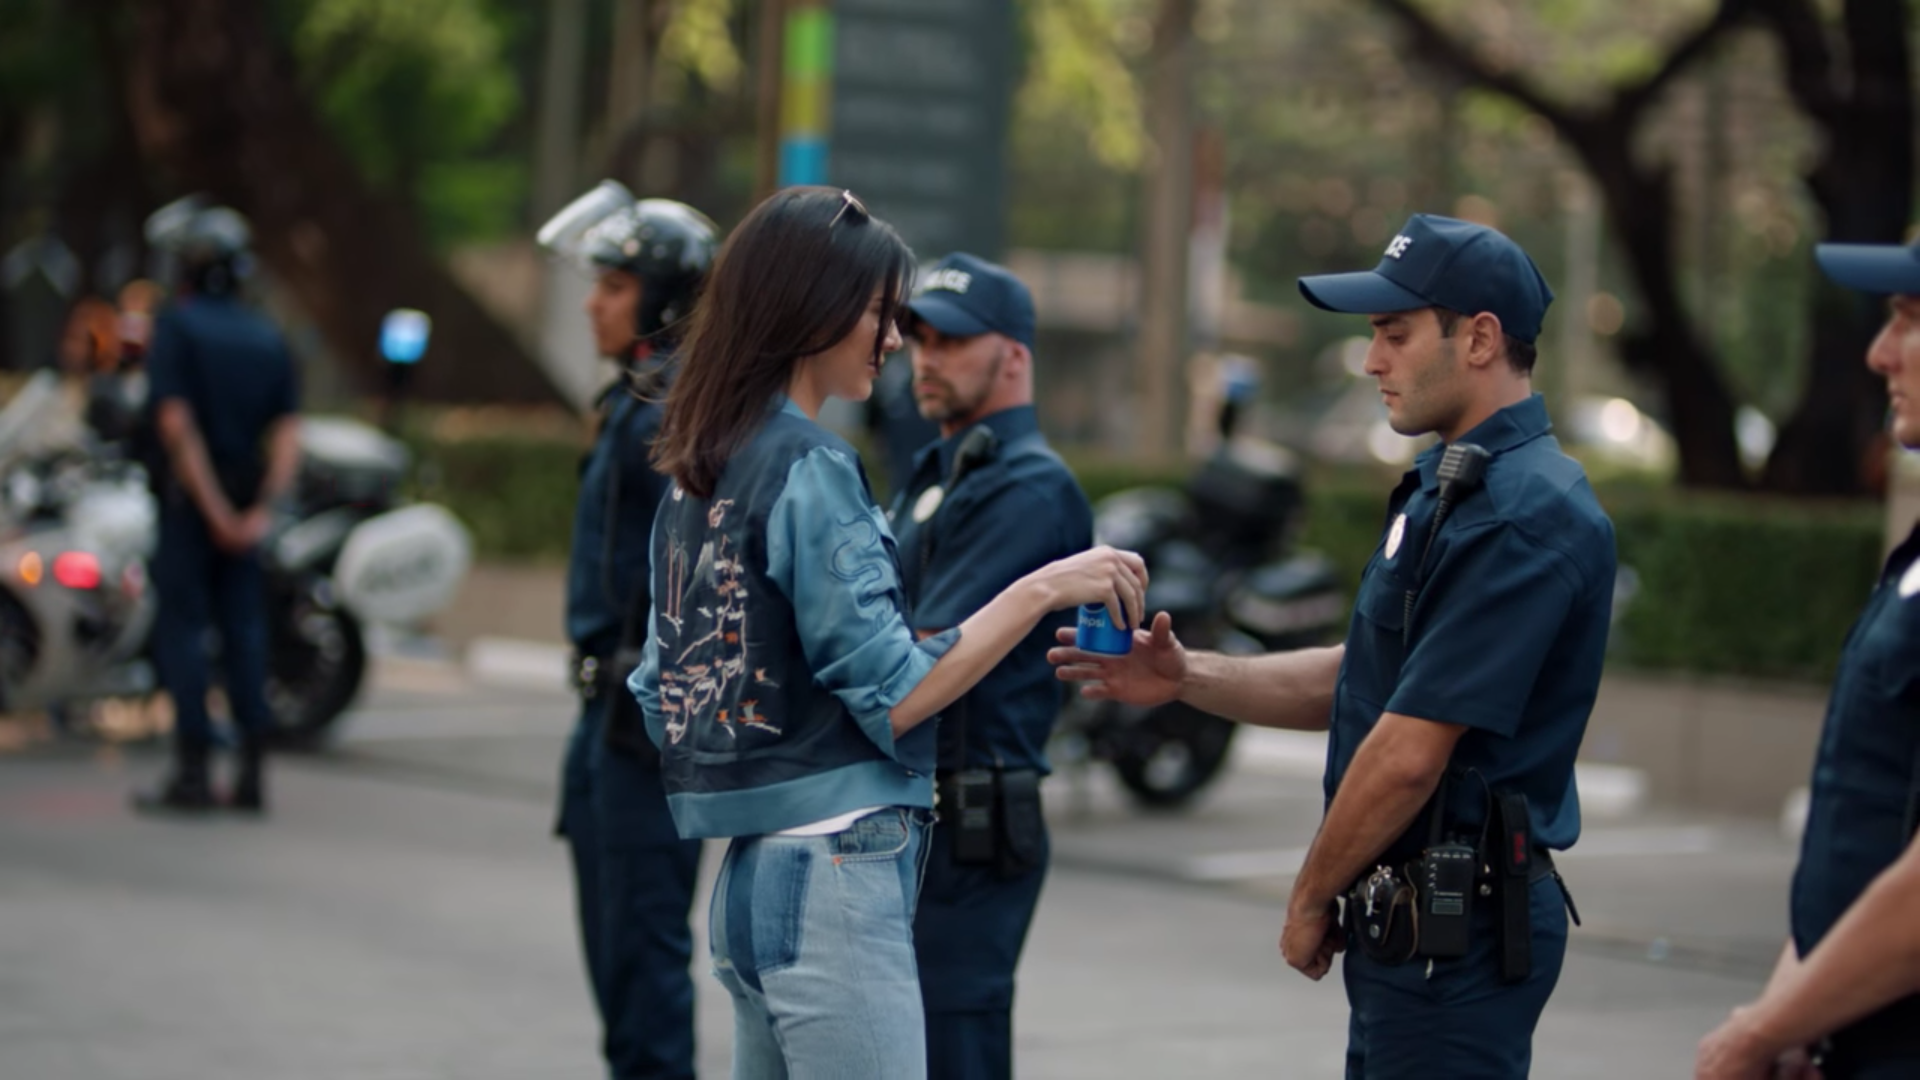 Dear Pepsi, I have more questions about the Kendall Jenner ad